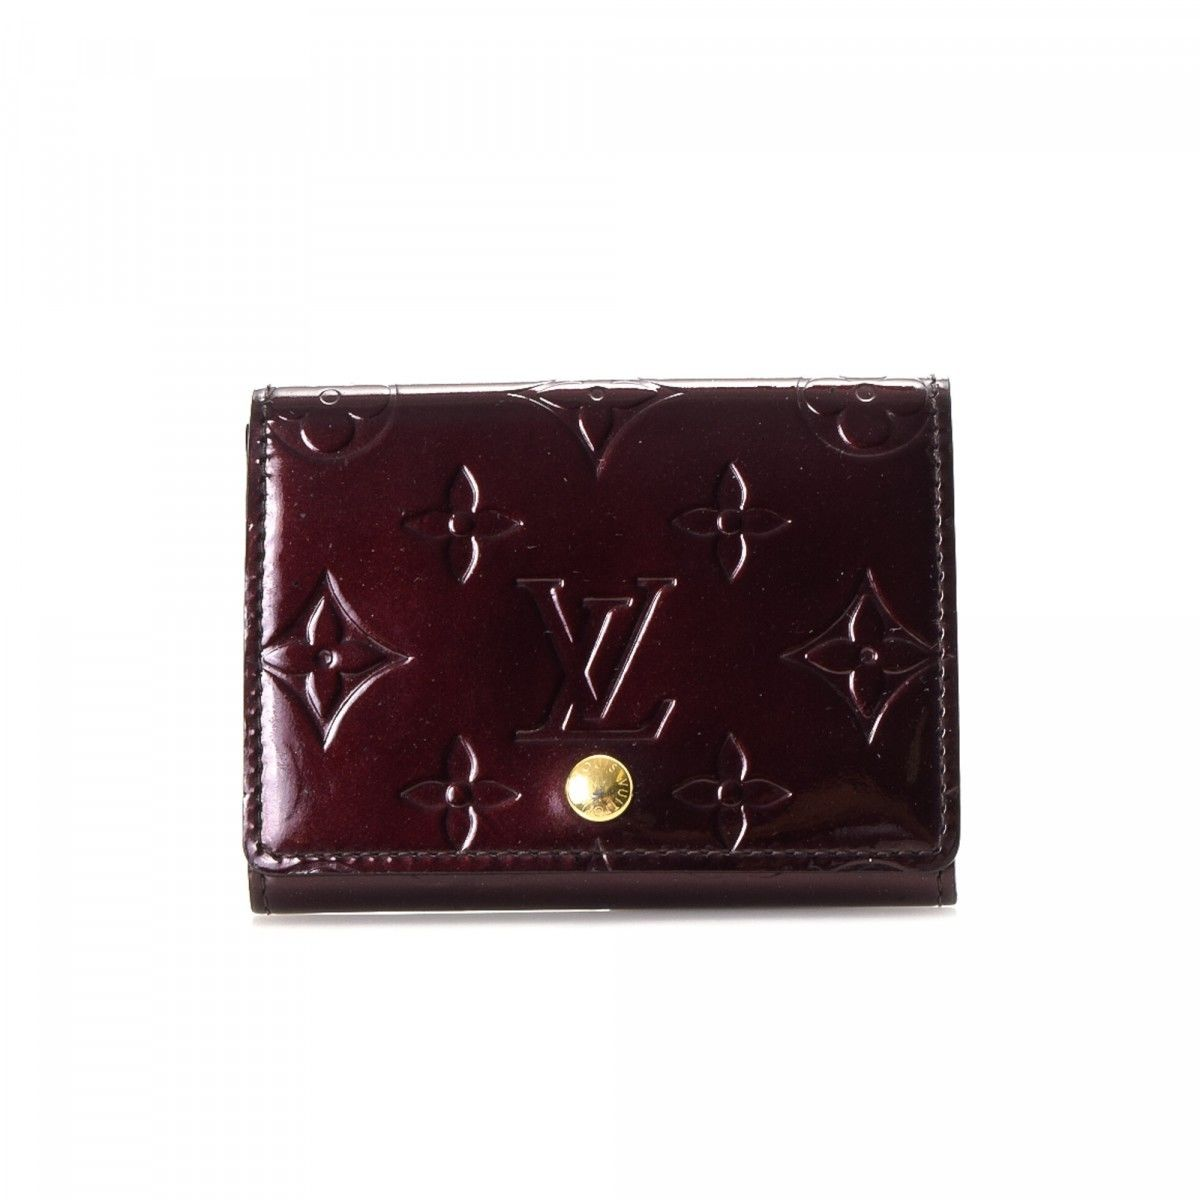 Louis Vuitton Business Card Holder Monogram Vernis Patent leather ...